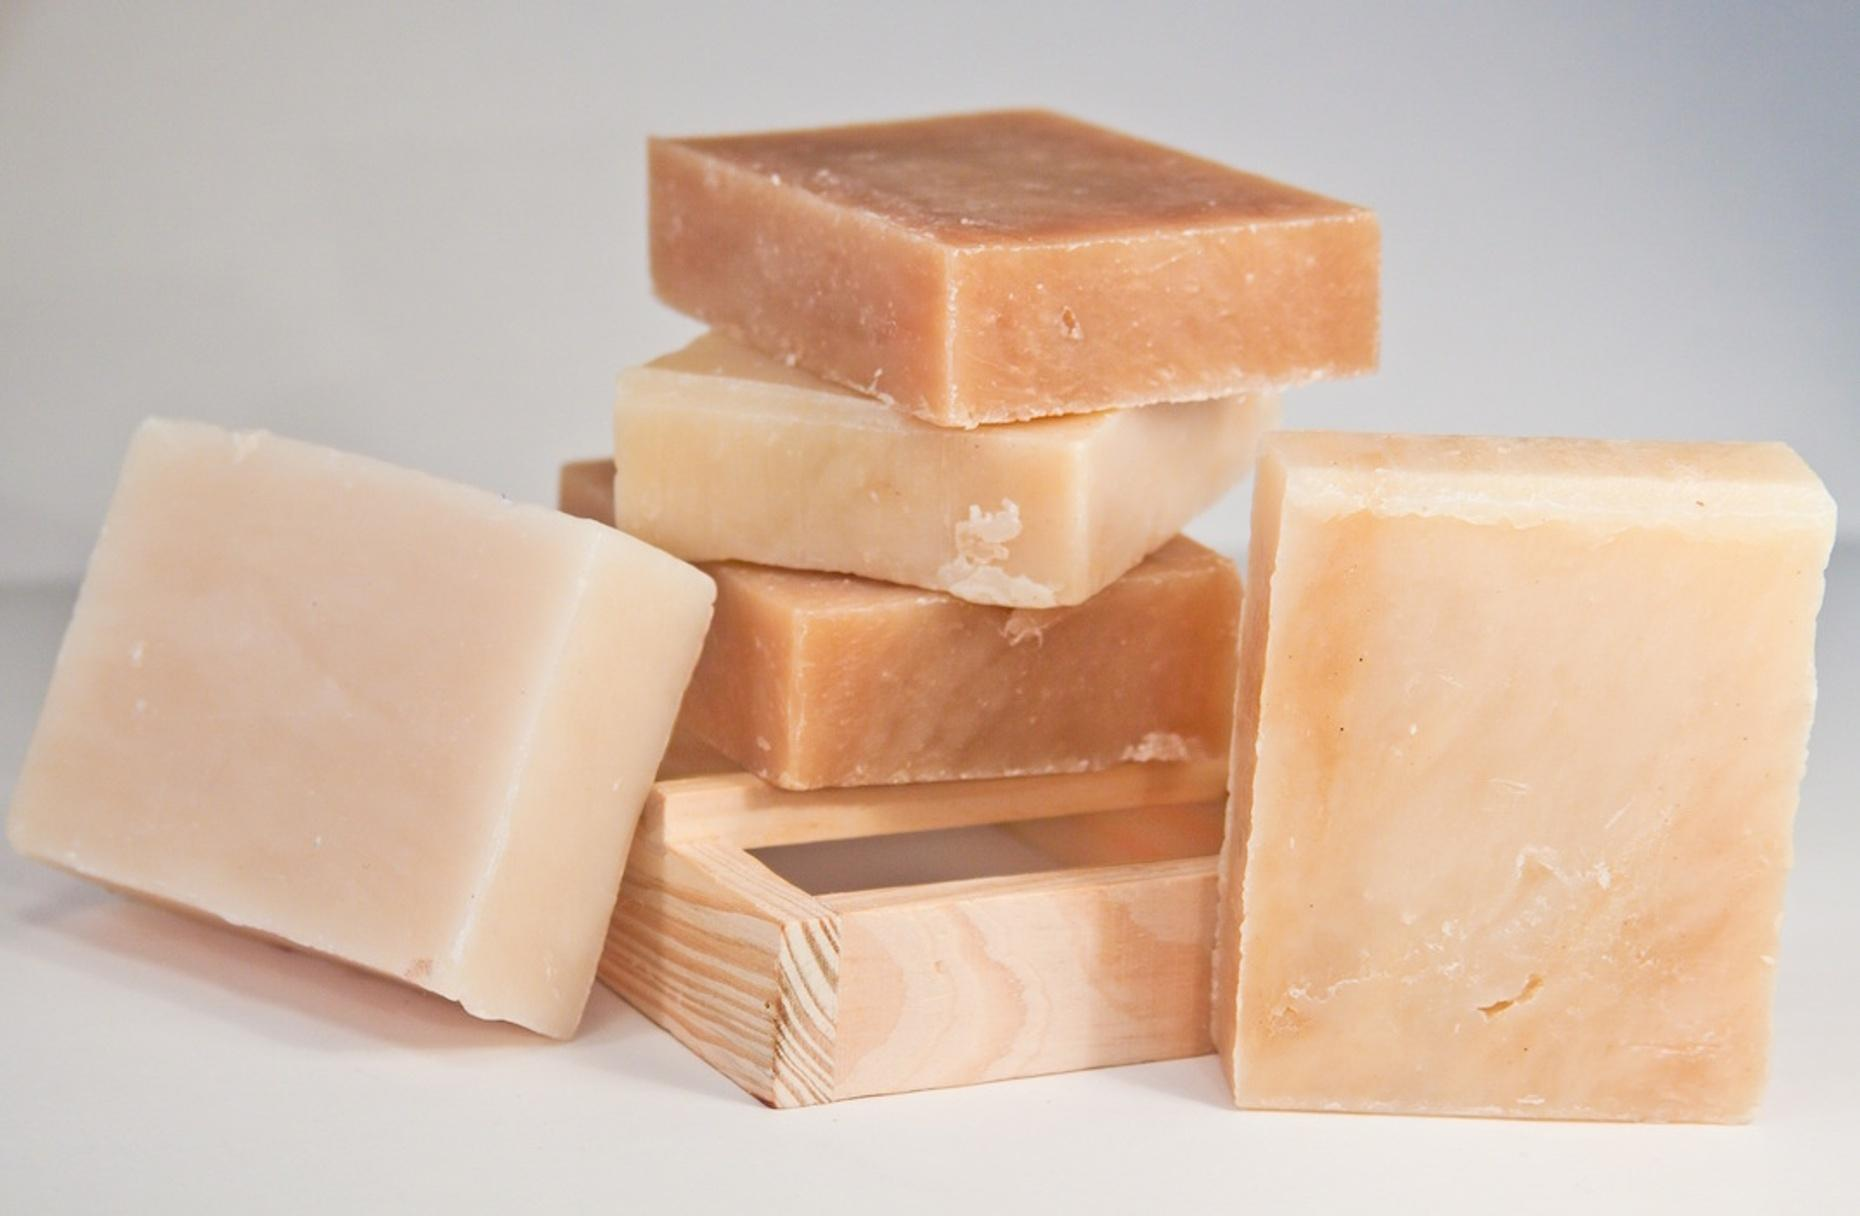 Soap-Making Class in Denver